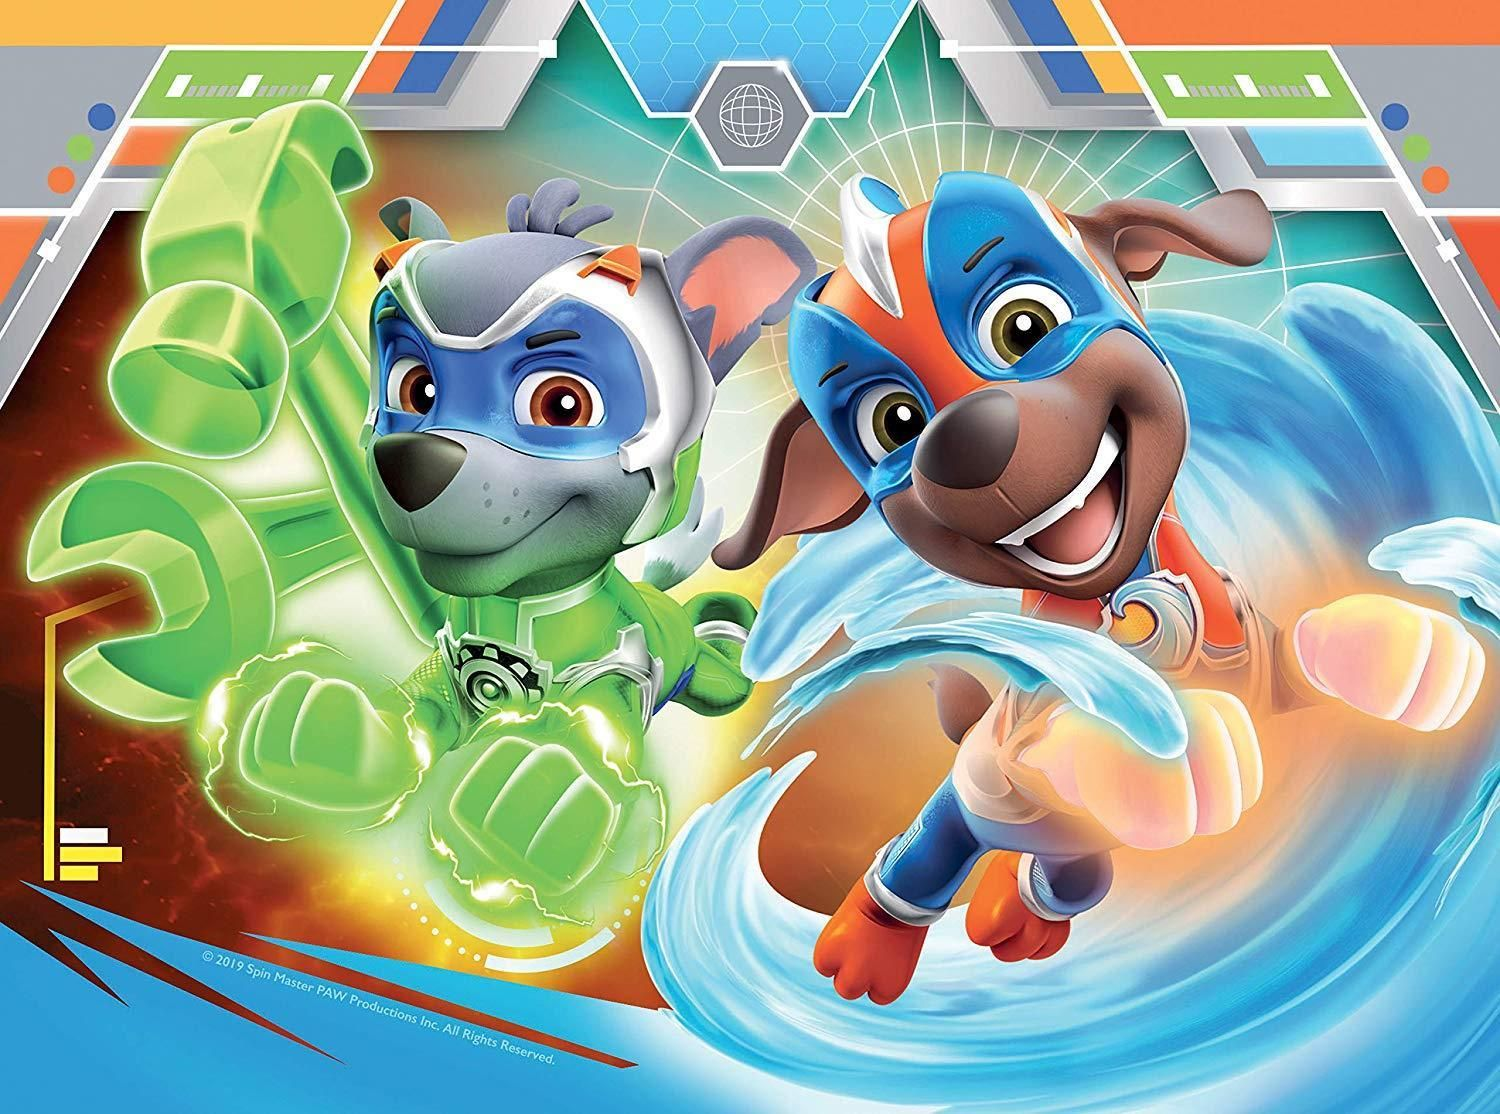 Ravensburger Paw Patrol Mighty Pups 4 In A Box Jigsaw Puzzles In 2020 Paw Patrol Paw Patrol Pups Paw